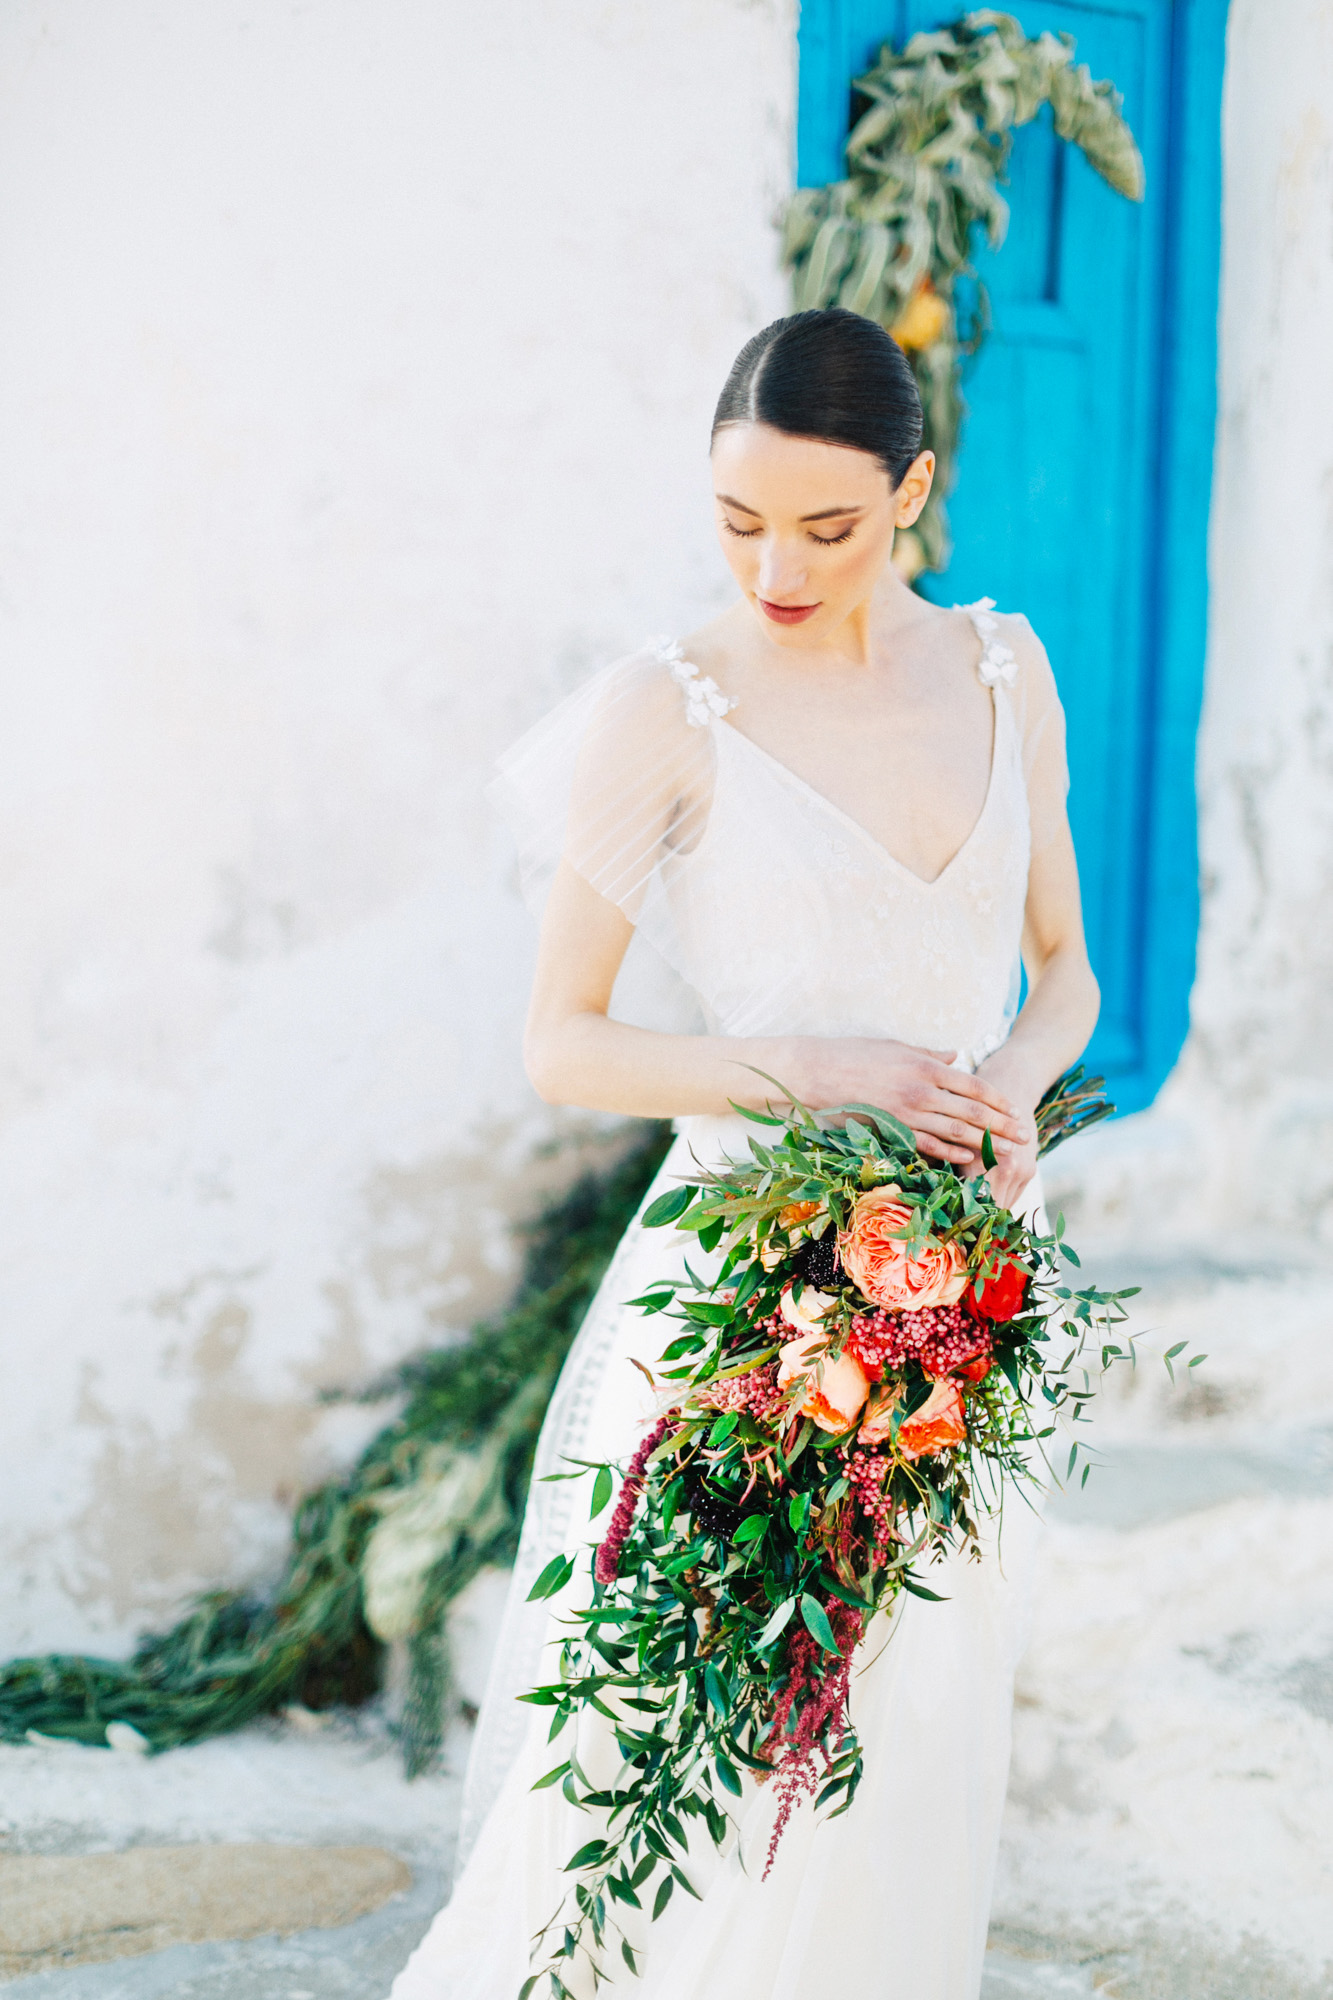 Beautiful modern bride at her wedding in Mykonos island, Greece.